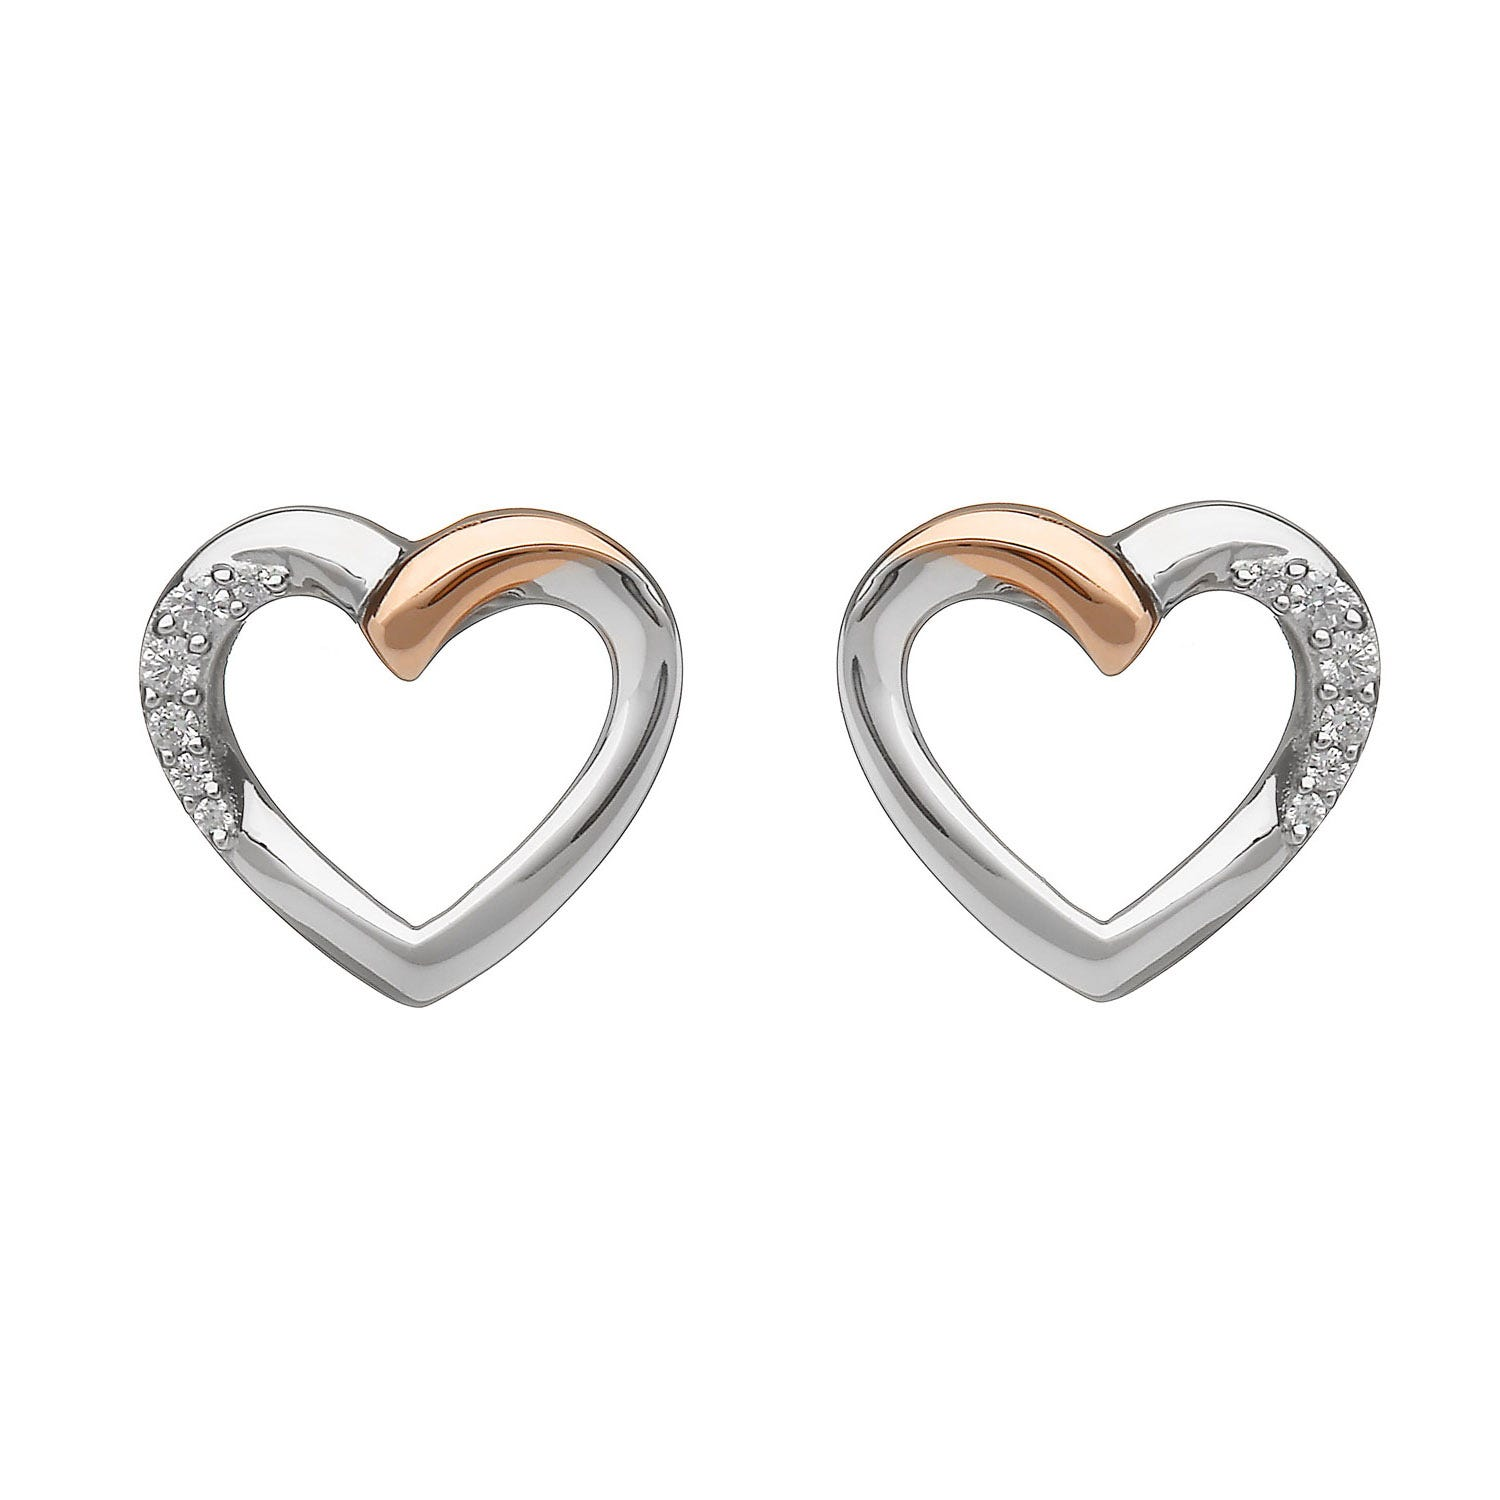 House of Lor Irish Rose Gold Sterling Silver Heart Earrings